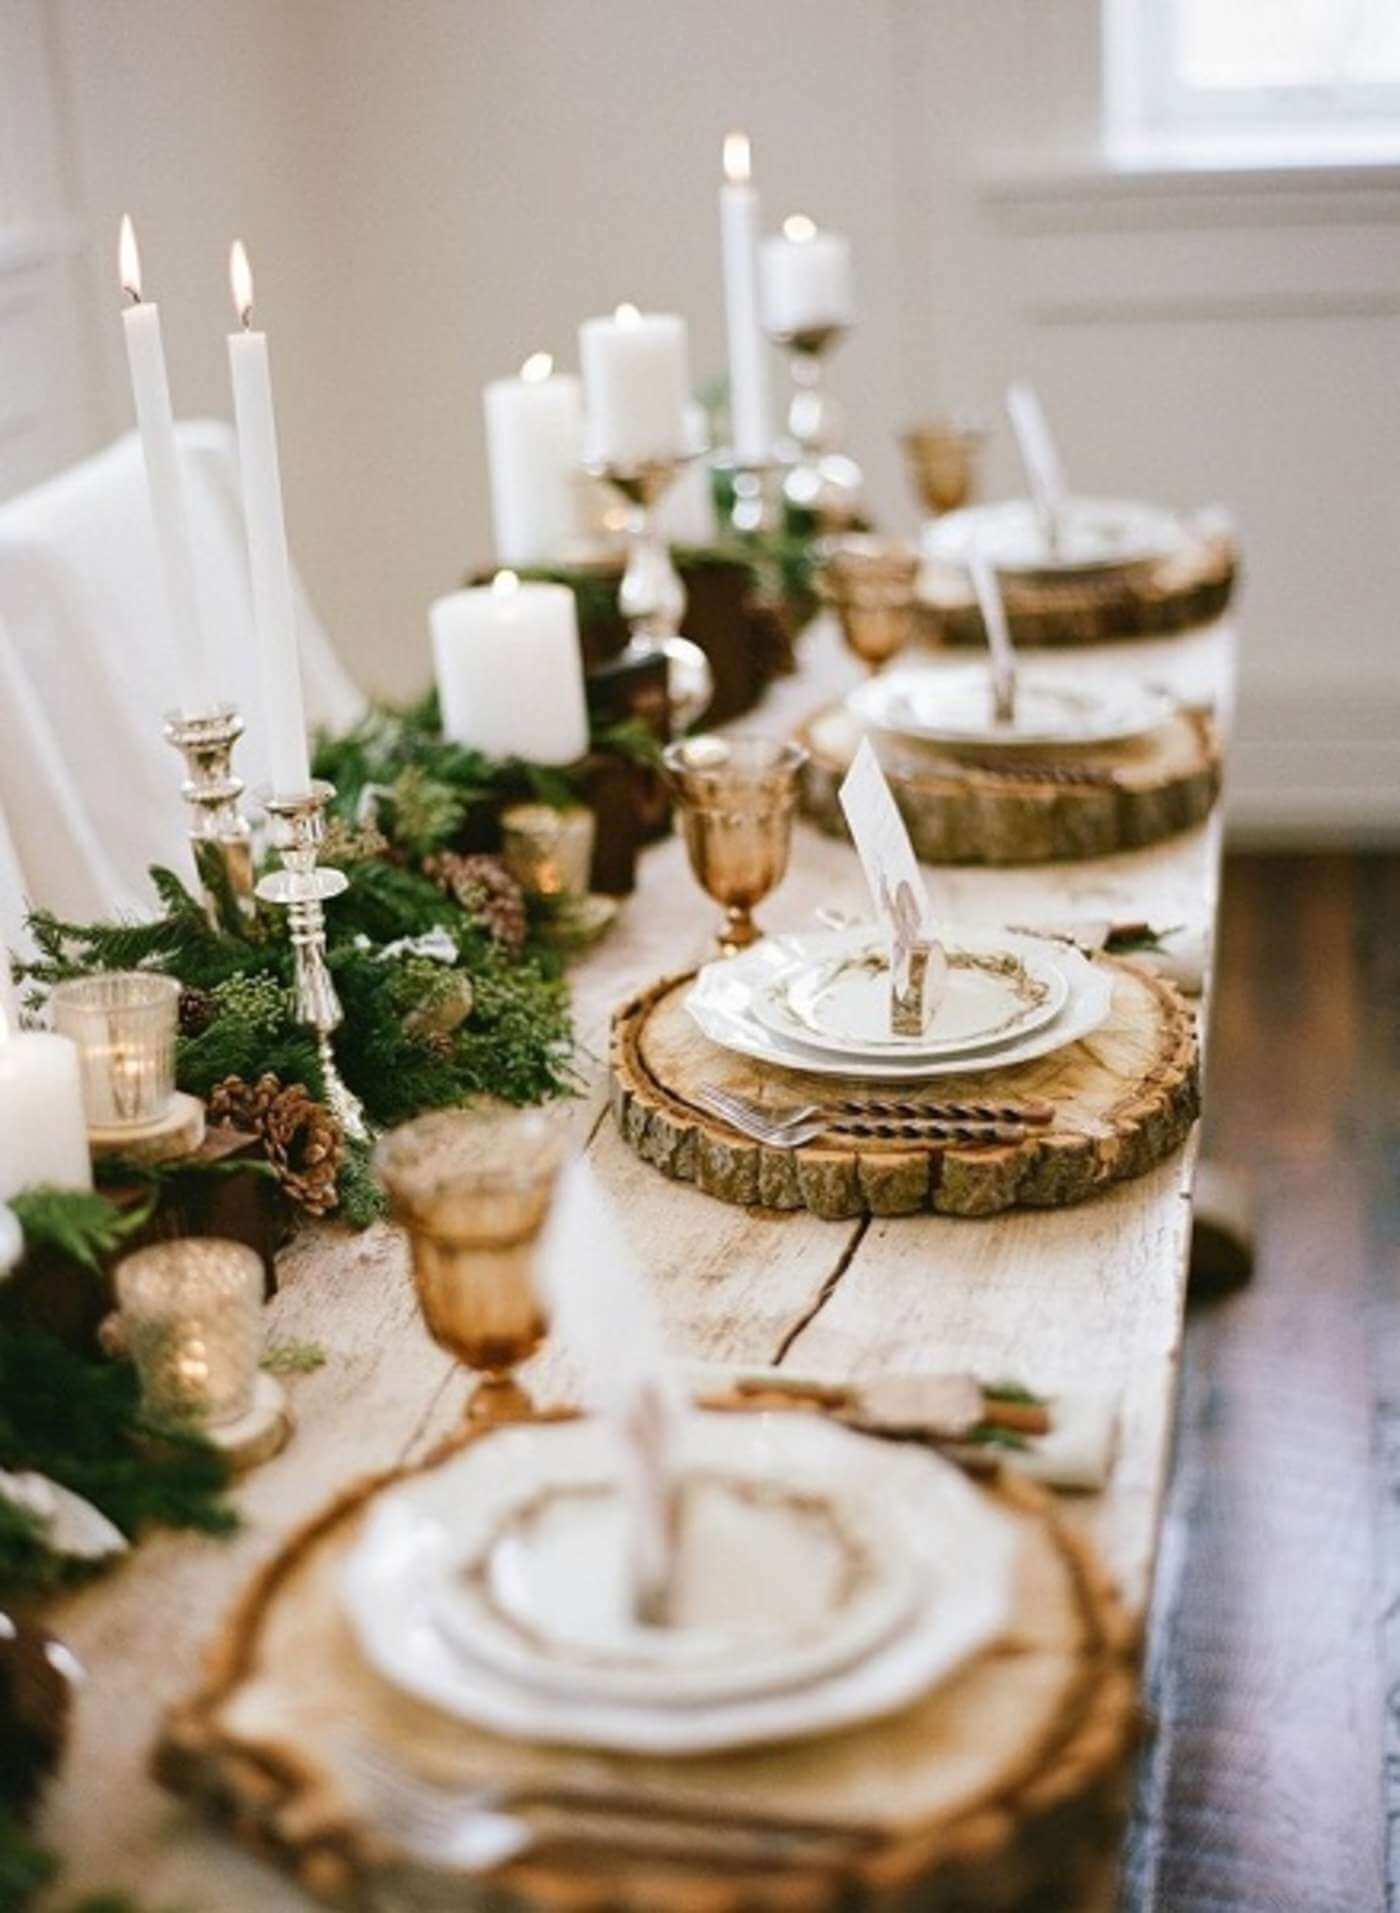 Woodland Elegance Meandering Table Centerpiece